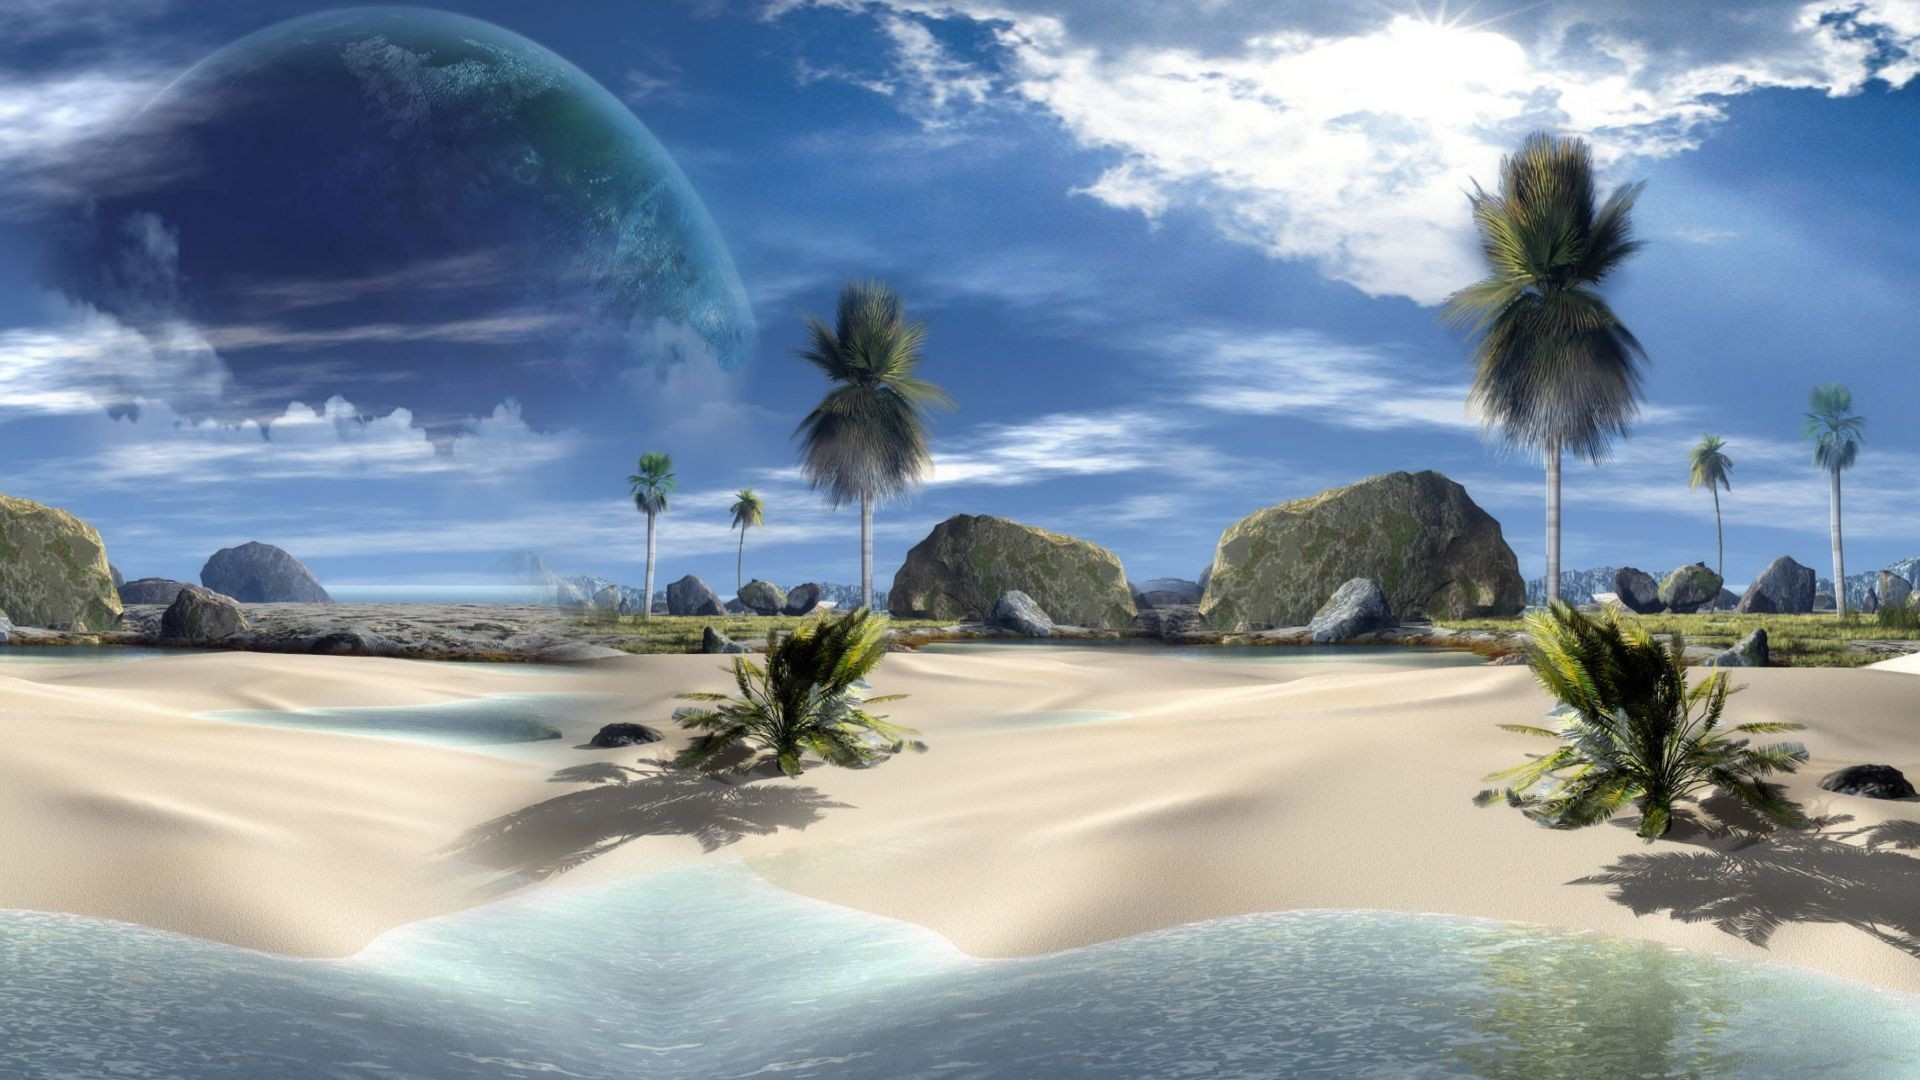 1920x1080 Cute 3d Beach Desktop #Wallpaper